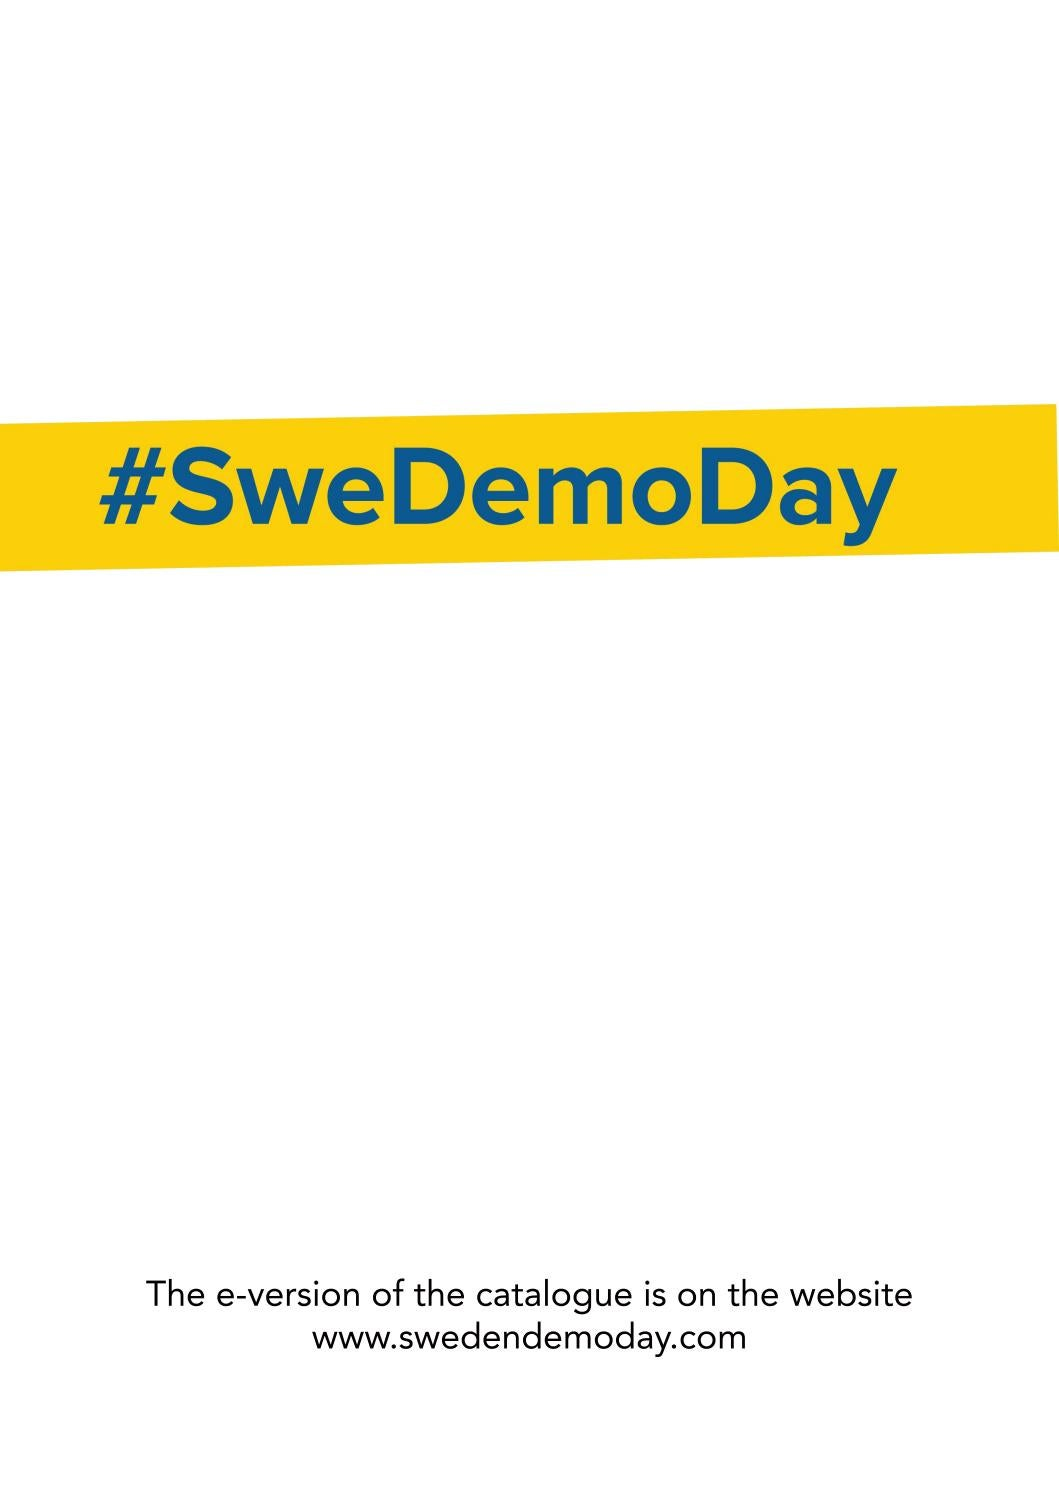 sweden demo day catalogue 2016 by